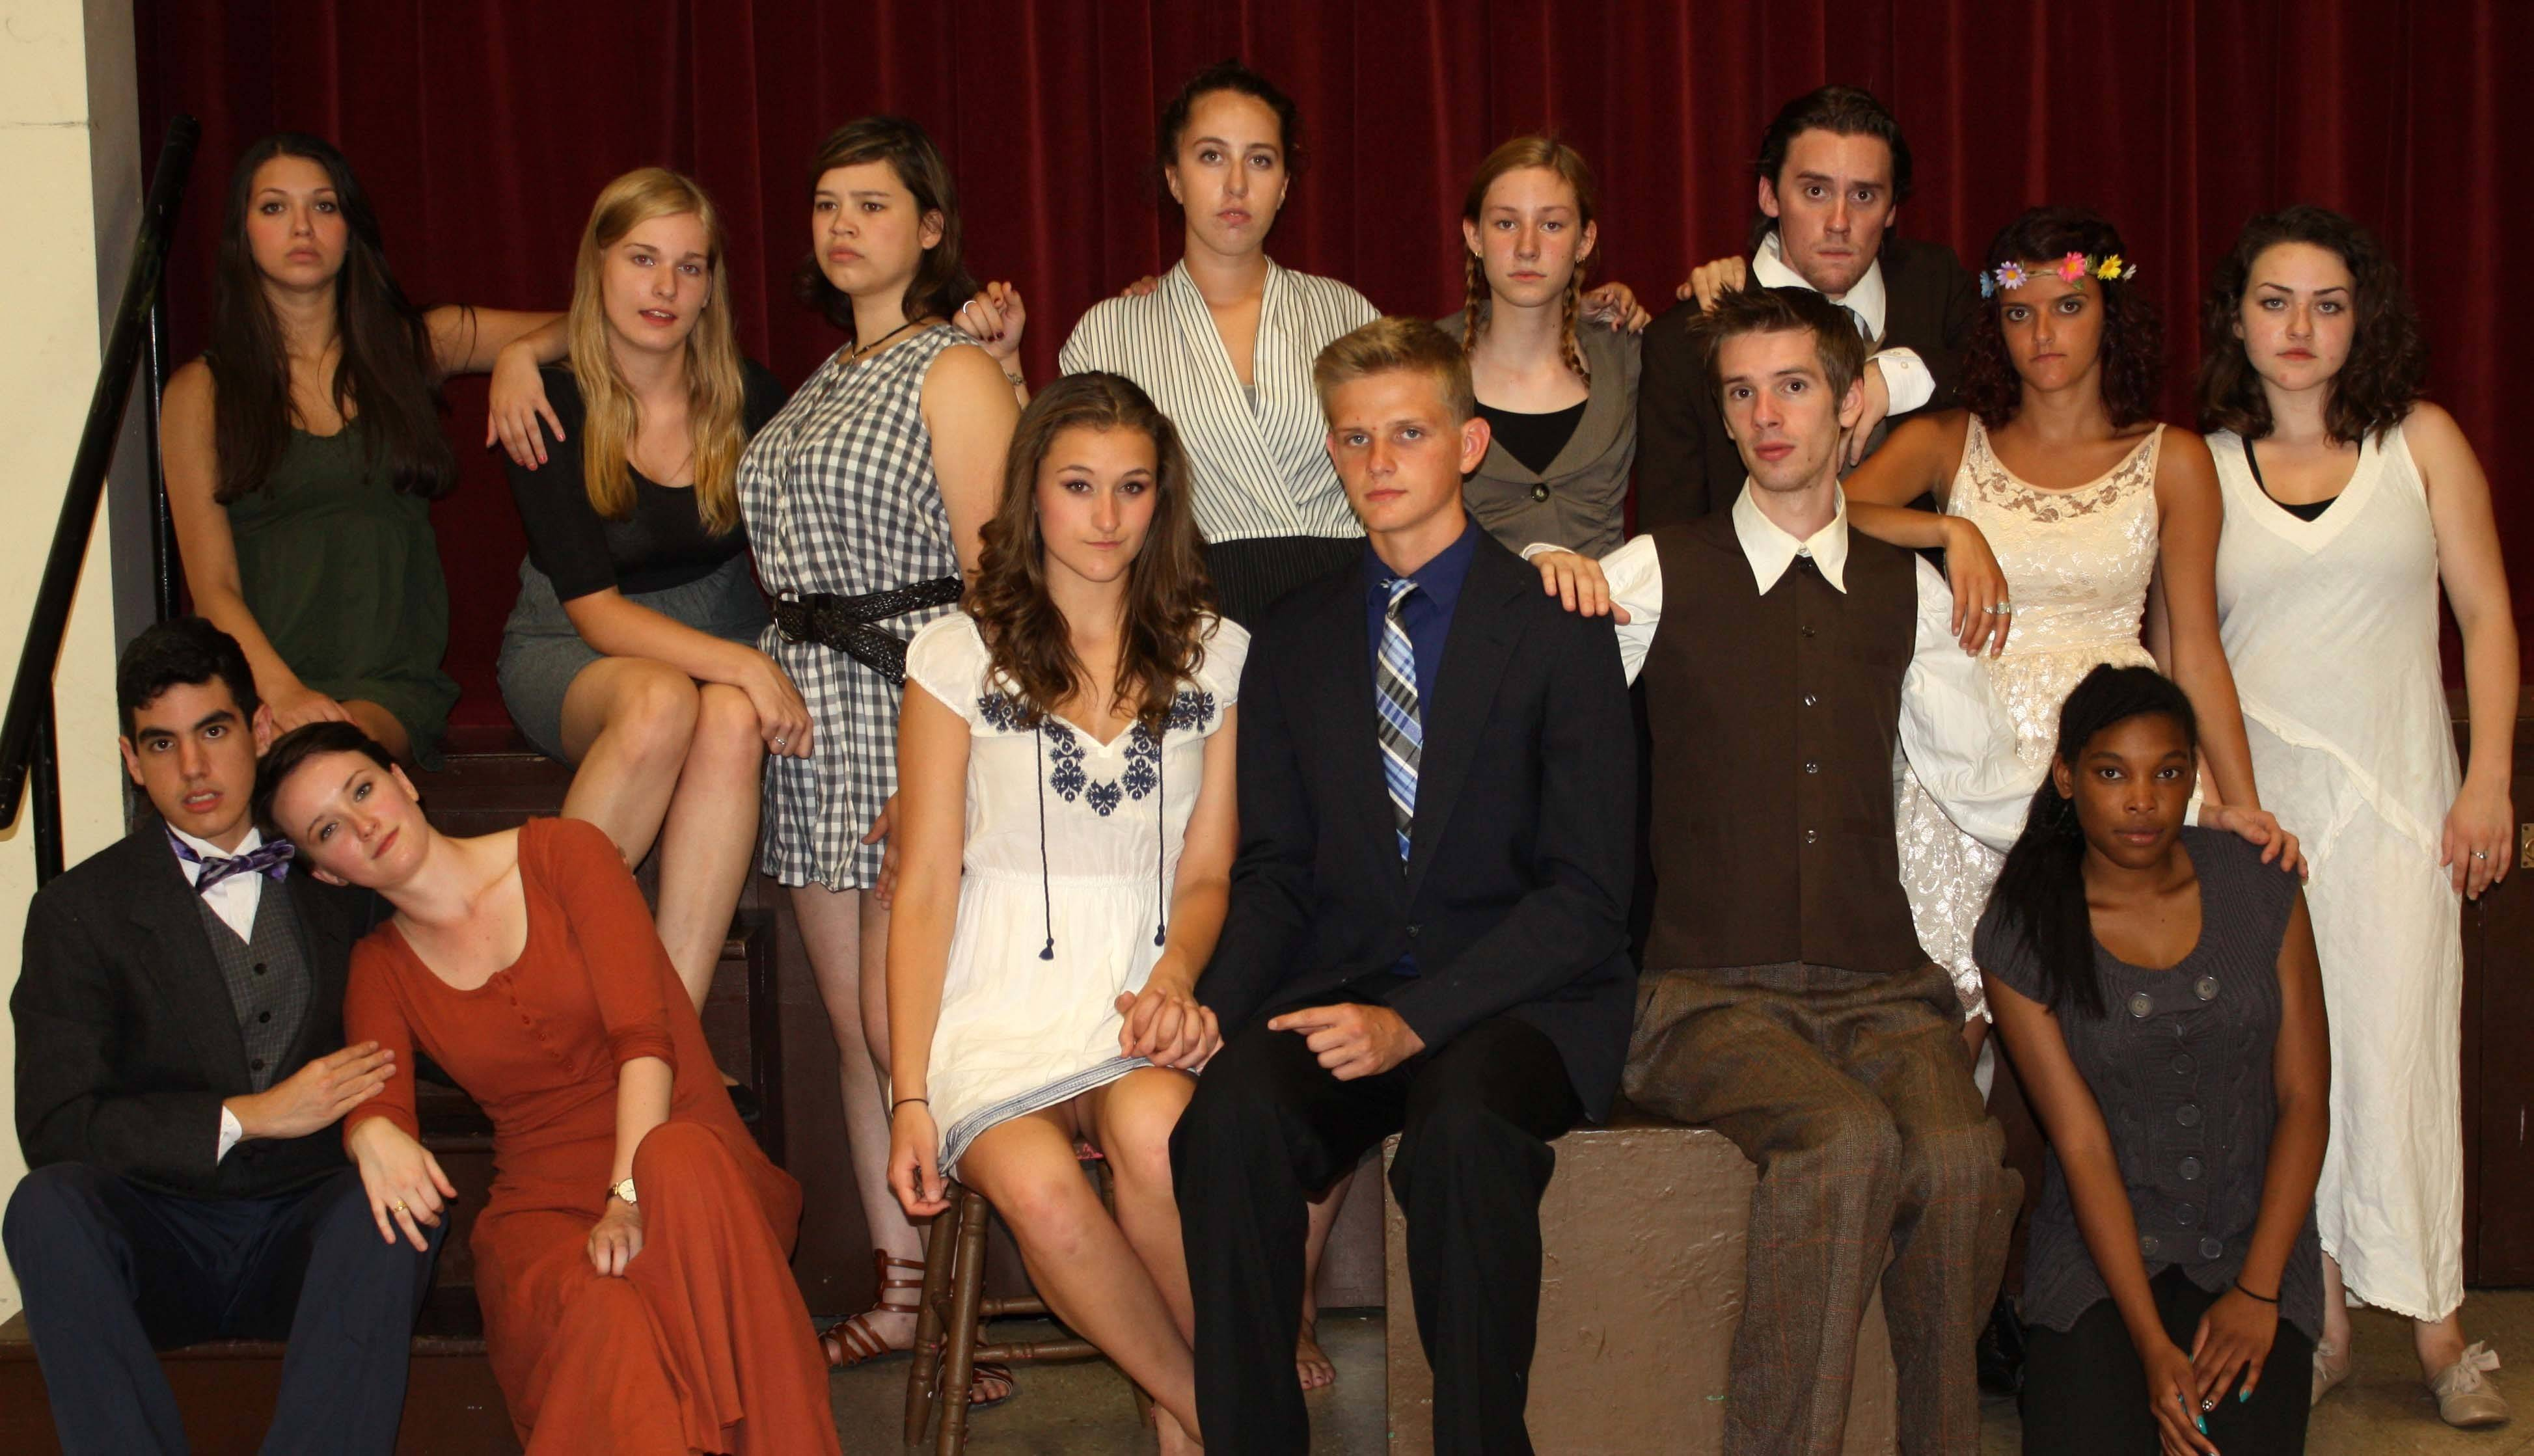 "The cast of ""Spring Awakening"": Front row: Justin Santostefano of Elgin, Erin Noll of Lake Zurich, Kelsey Krigas of Fox River Grove, Mitch Kedzior of Cary, Benjamin Golay of Chicago and Gail Goodman of Palatine; second row: Kayla DeFranza of Arlington Heights, Elizabeth Sample of Elgin, Mia Melone of Barrington, Breton Spiller of Mount Prospect, Sammi Goodmanson of Arlington Heights, Vinny Prisco of St. Charles, Madalyn Griseto of Des Plaines and Gabbi Jones of Arlington Heights."